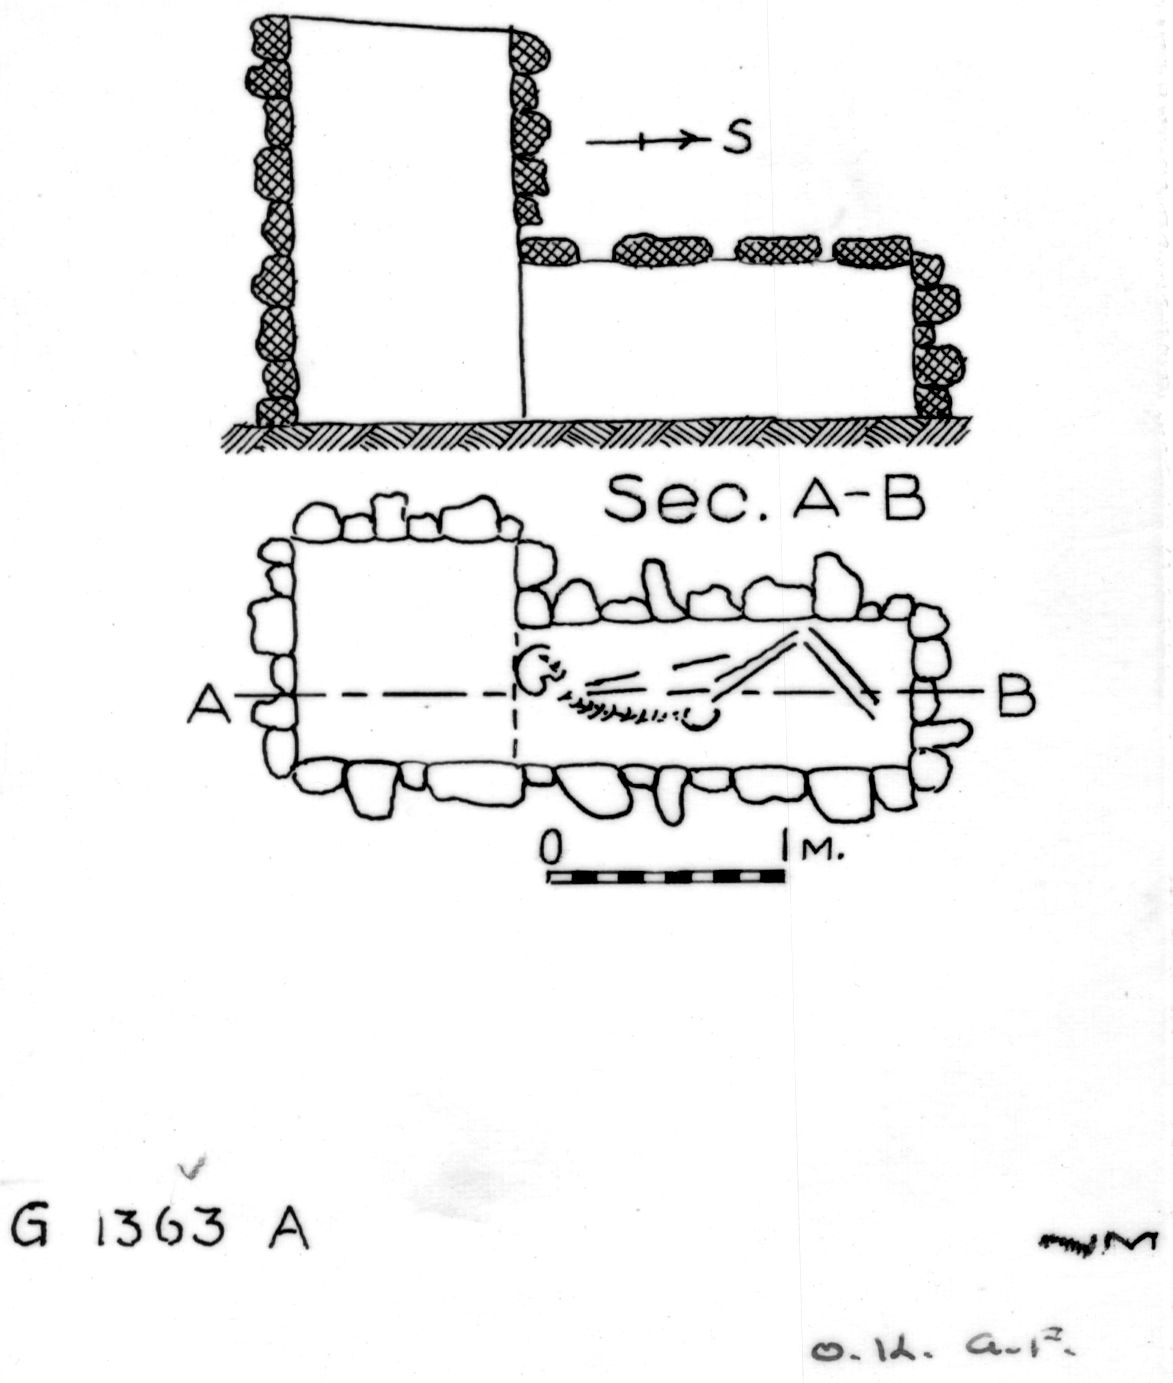 Maps and plans: G 1363, Shaft A